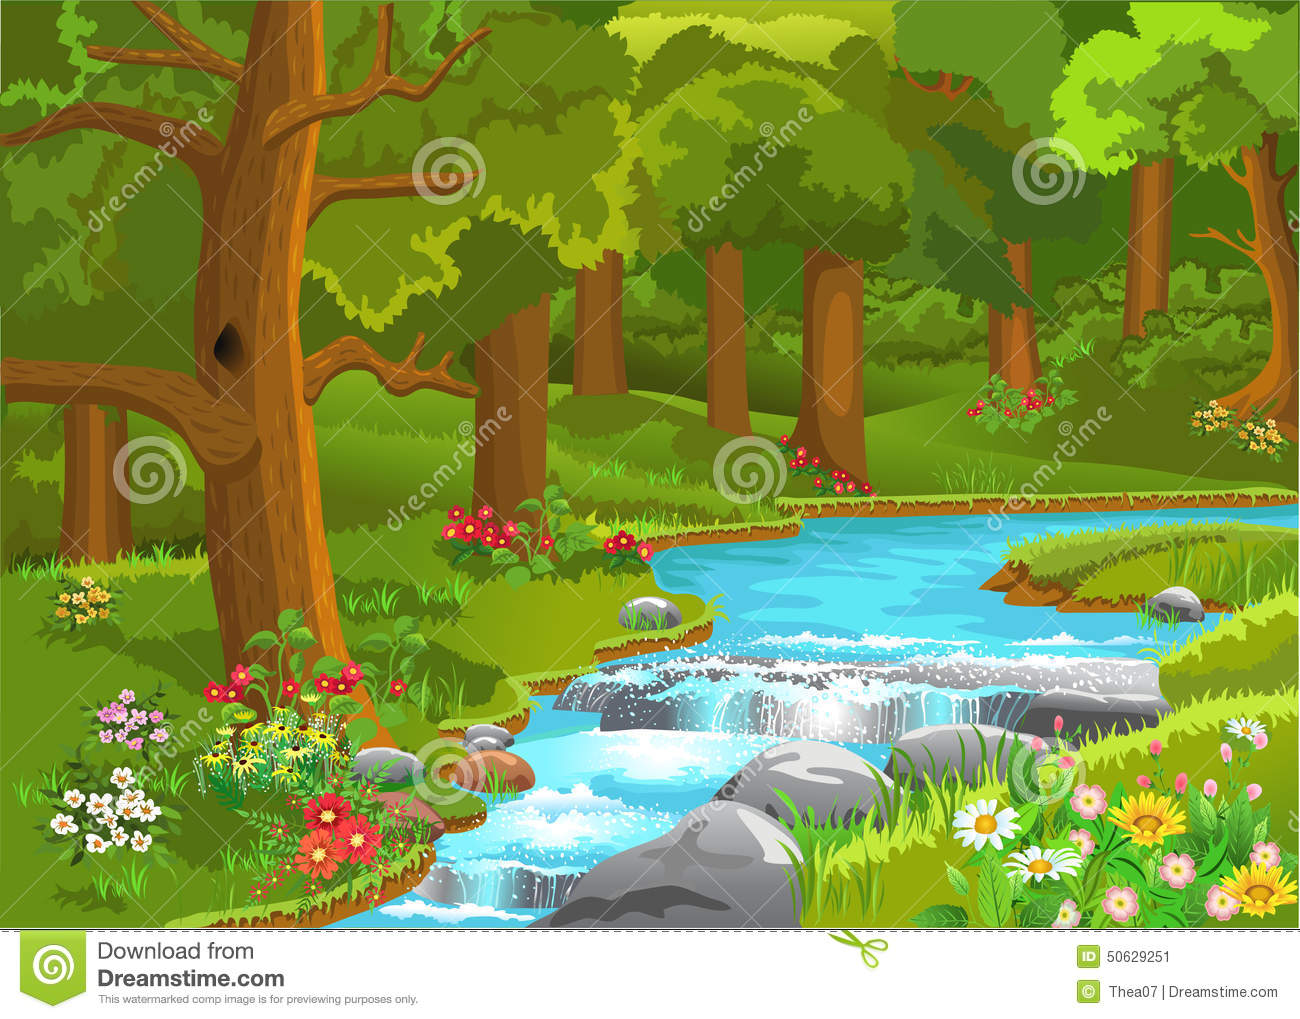 Landscape Illustration Vector Free: Stream Flowing Through The Forest Stock Vector